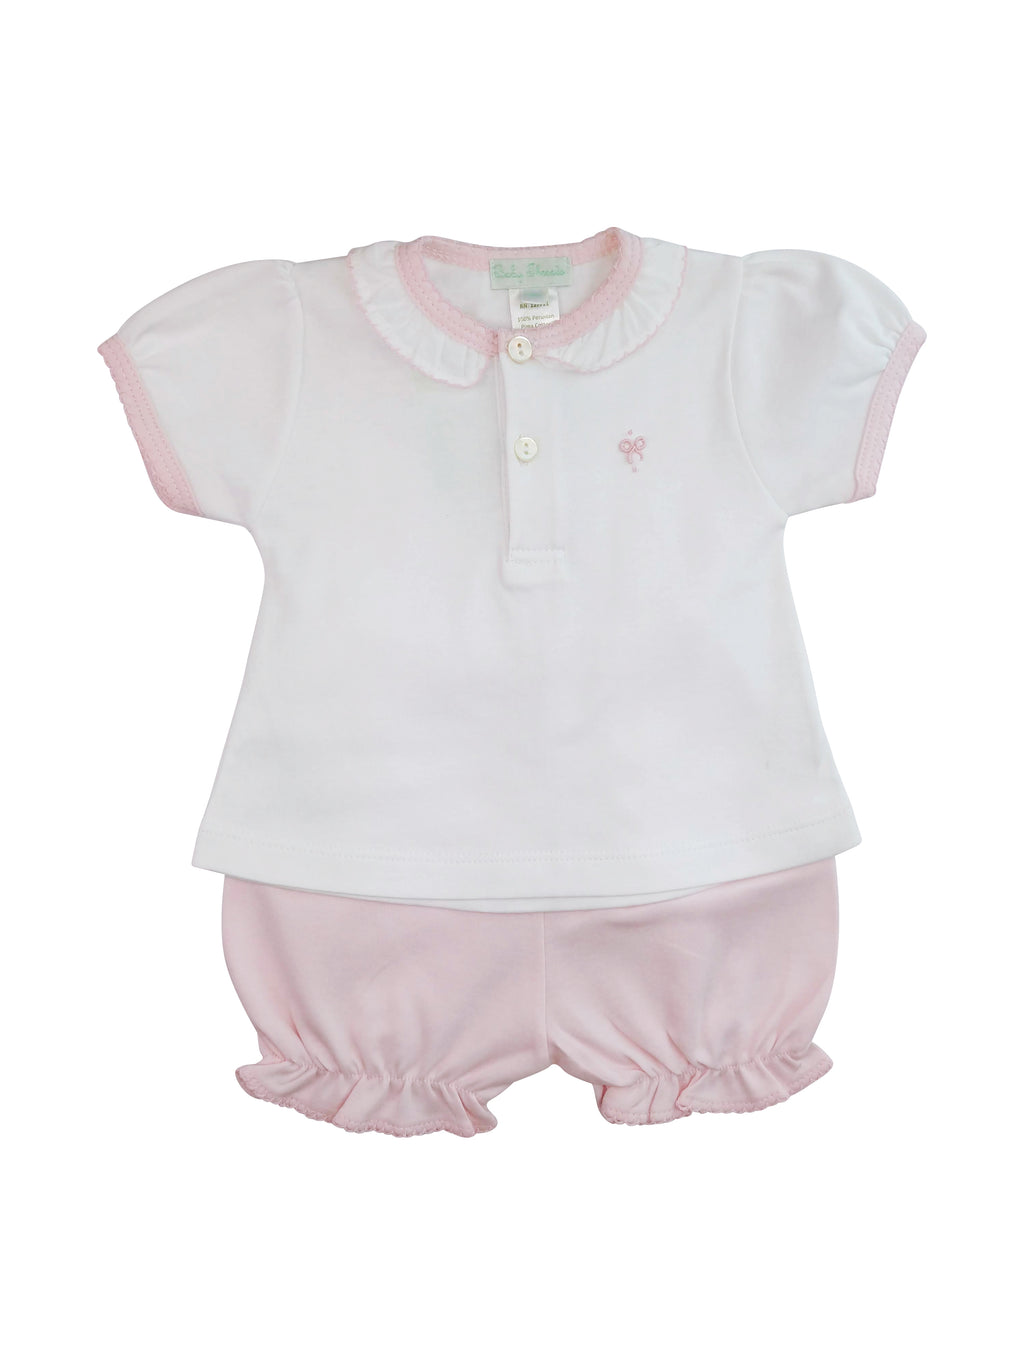 Baby Girl's White Bows Short Set - Little Threads Inc. Children's Clothing